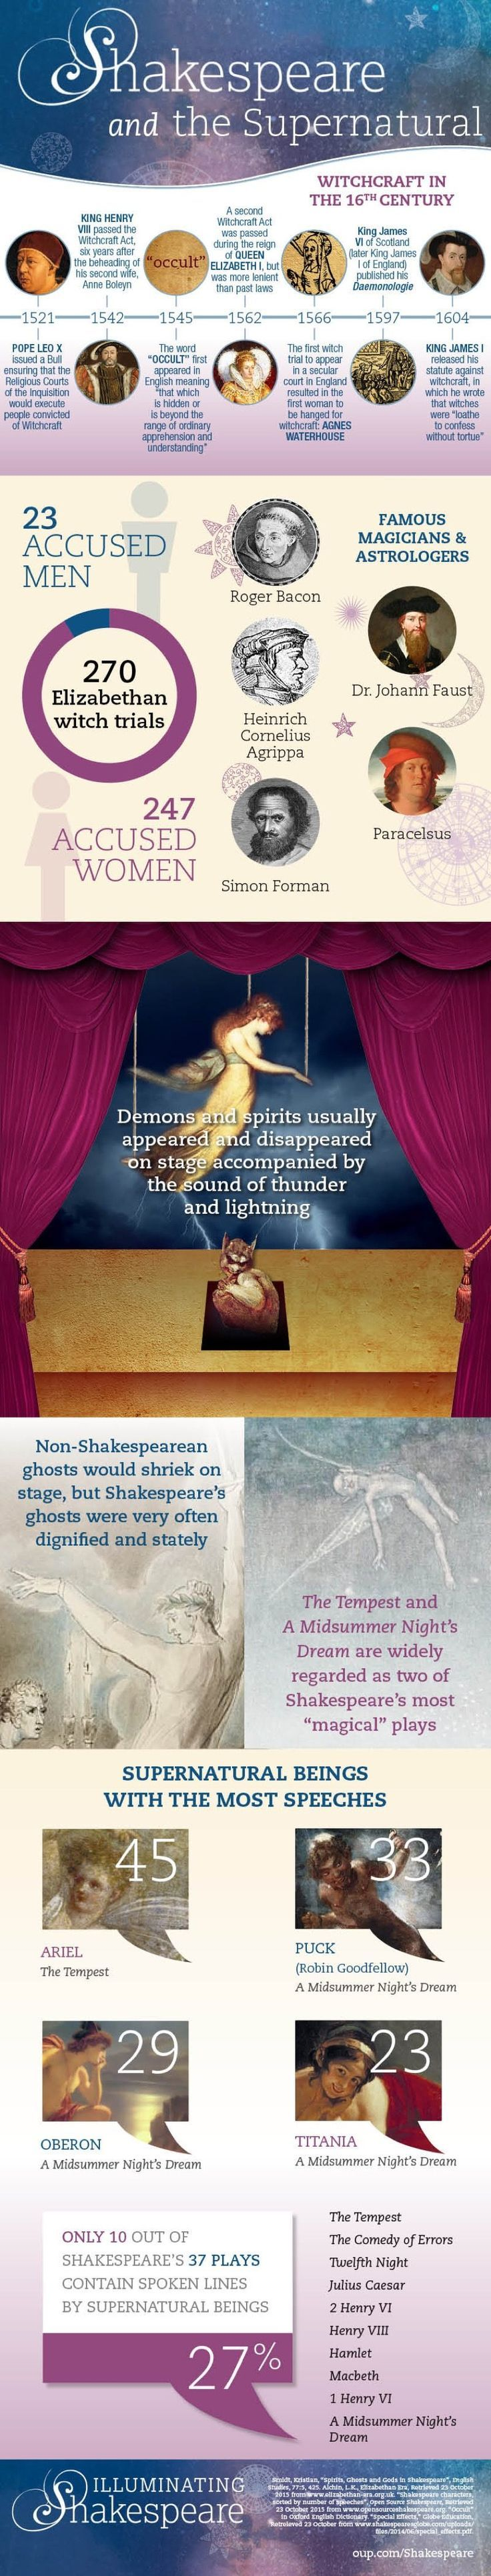 best images about macbeth gcse english william a closer look at shakespeare s fascination the supernatural infographic